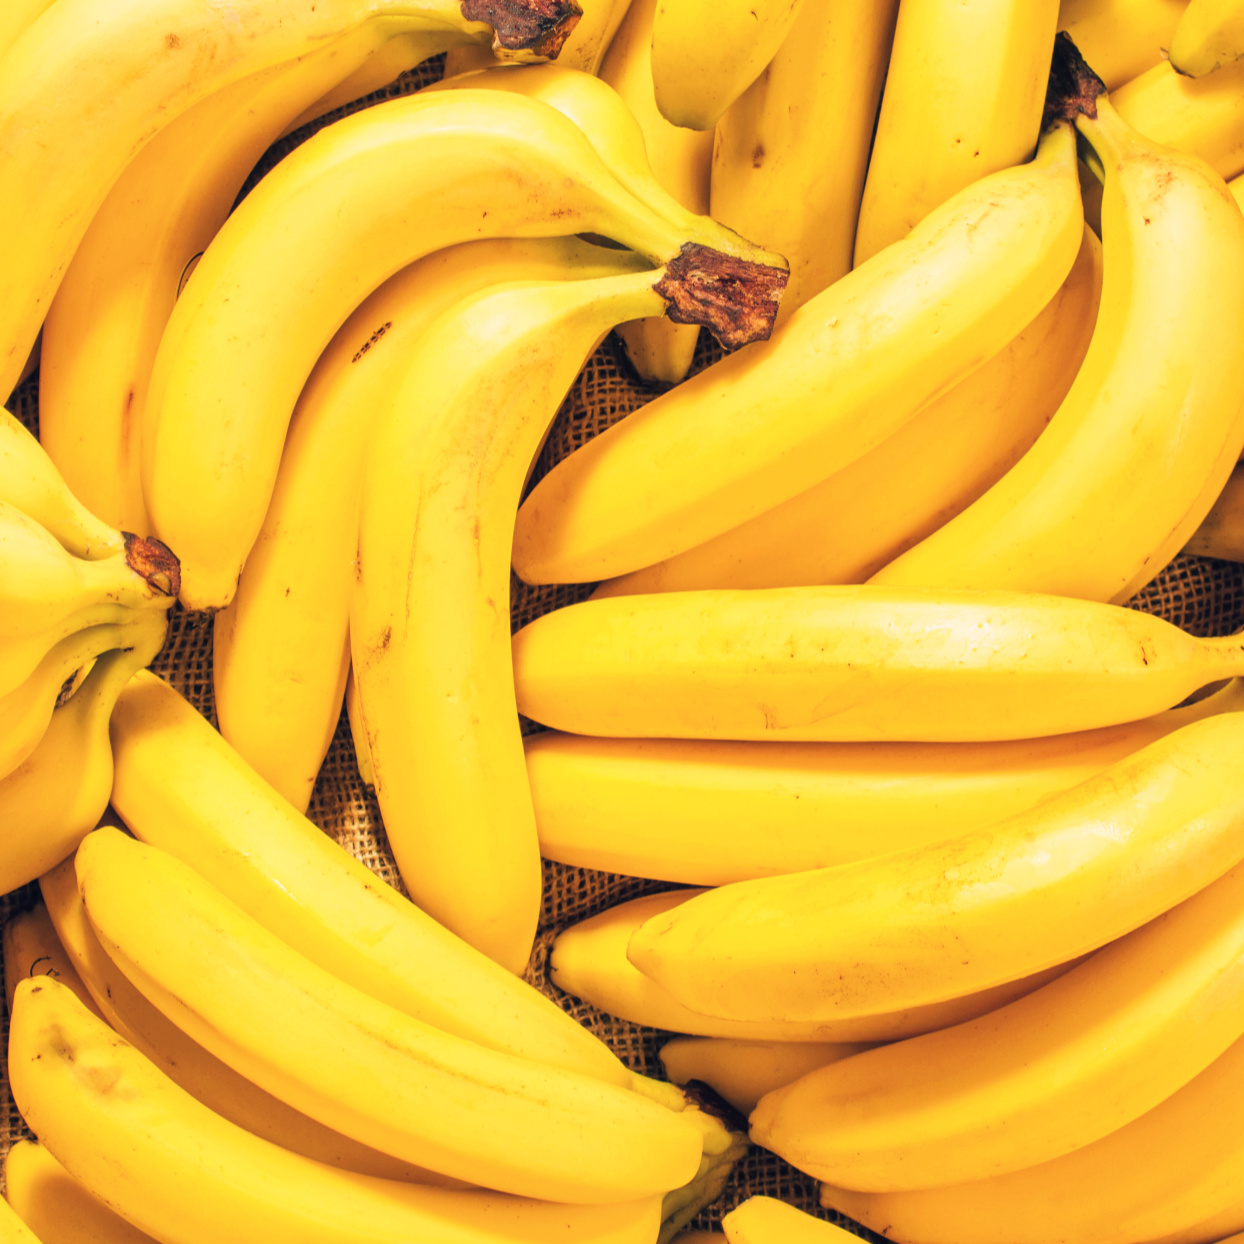 Banana-Killing Fungus Could Make the Fruit Go Extinct